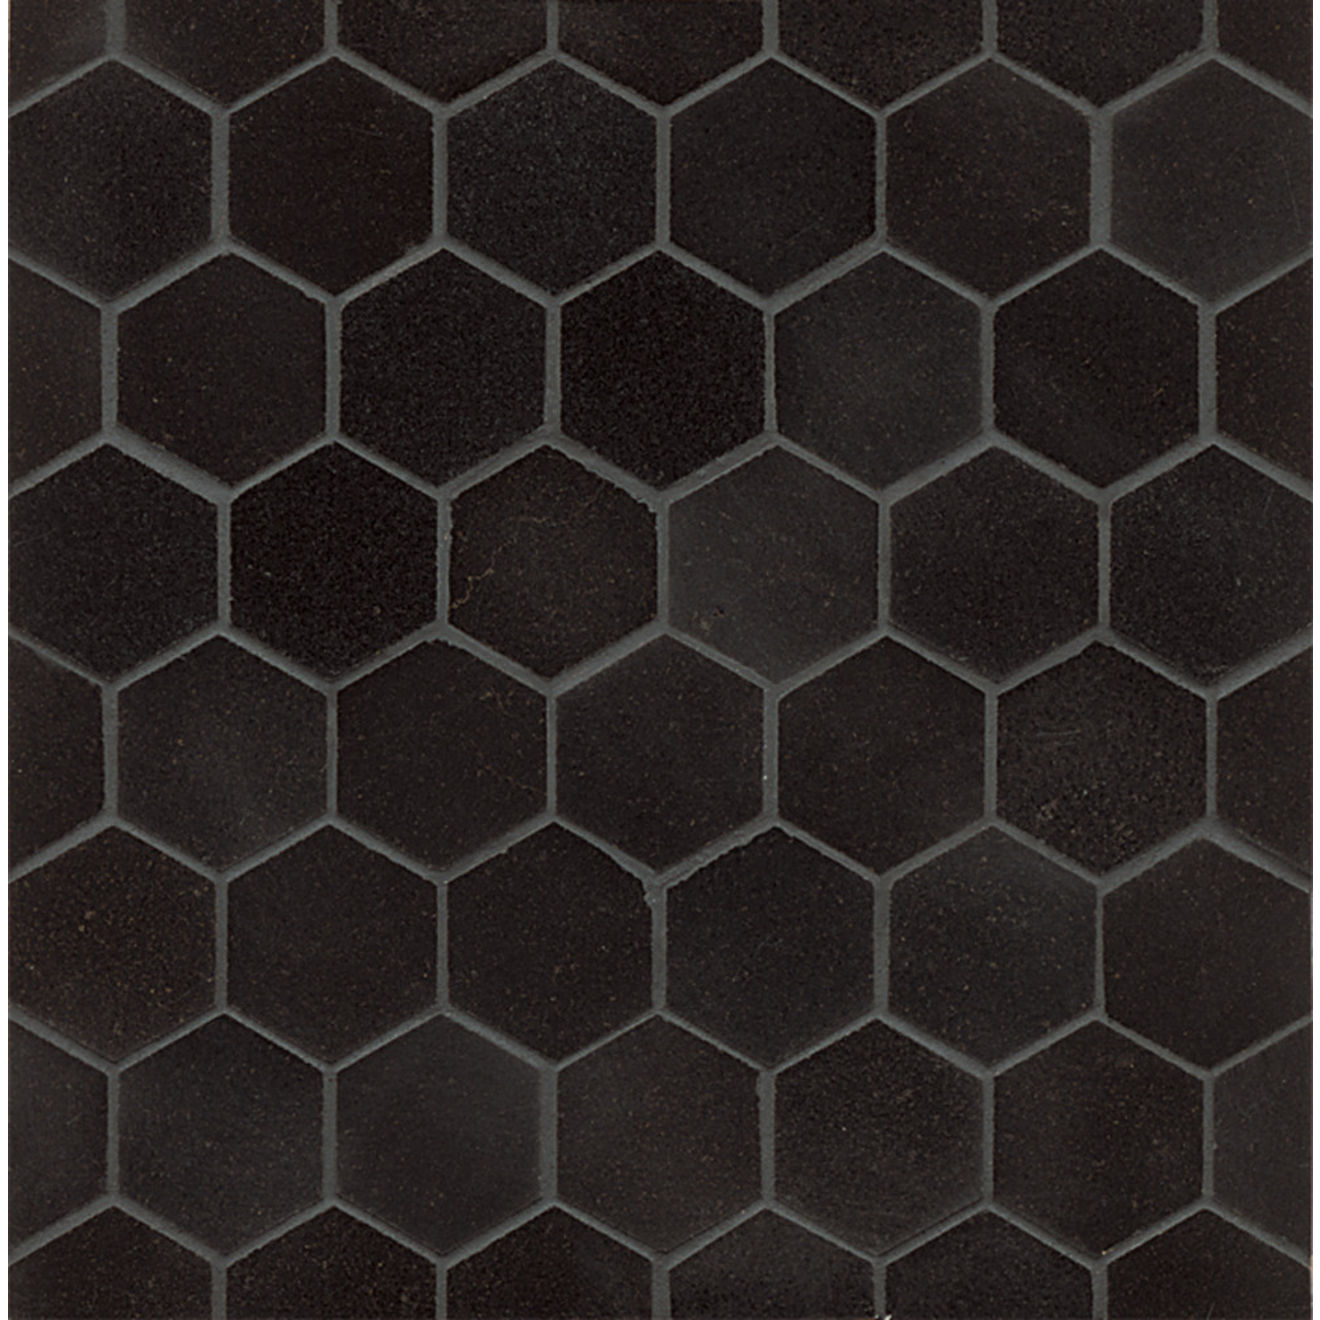 Absolute Black Wall Mosaic Bedrosians Tile Amp Stone